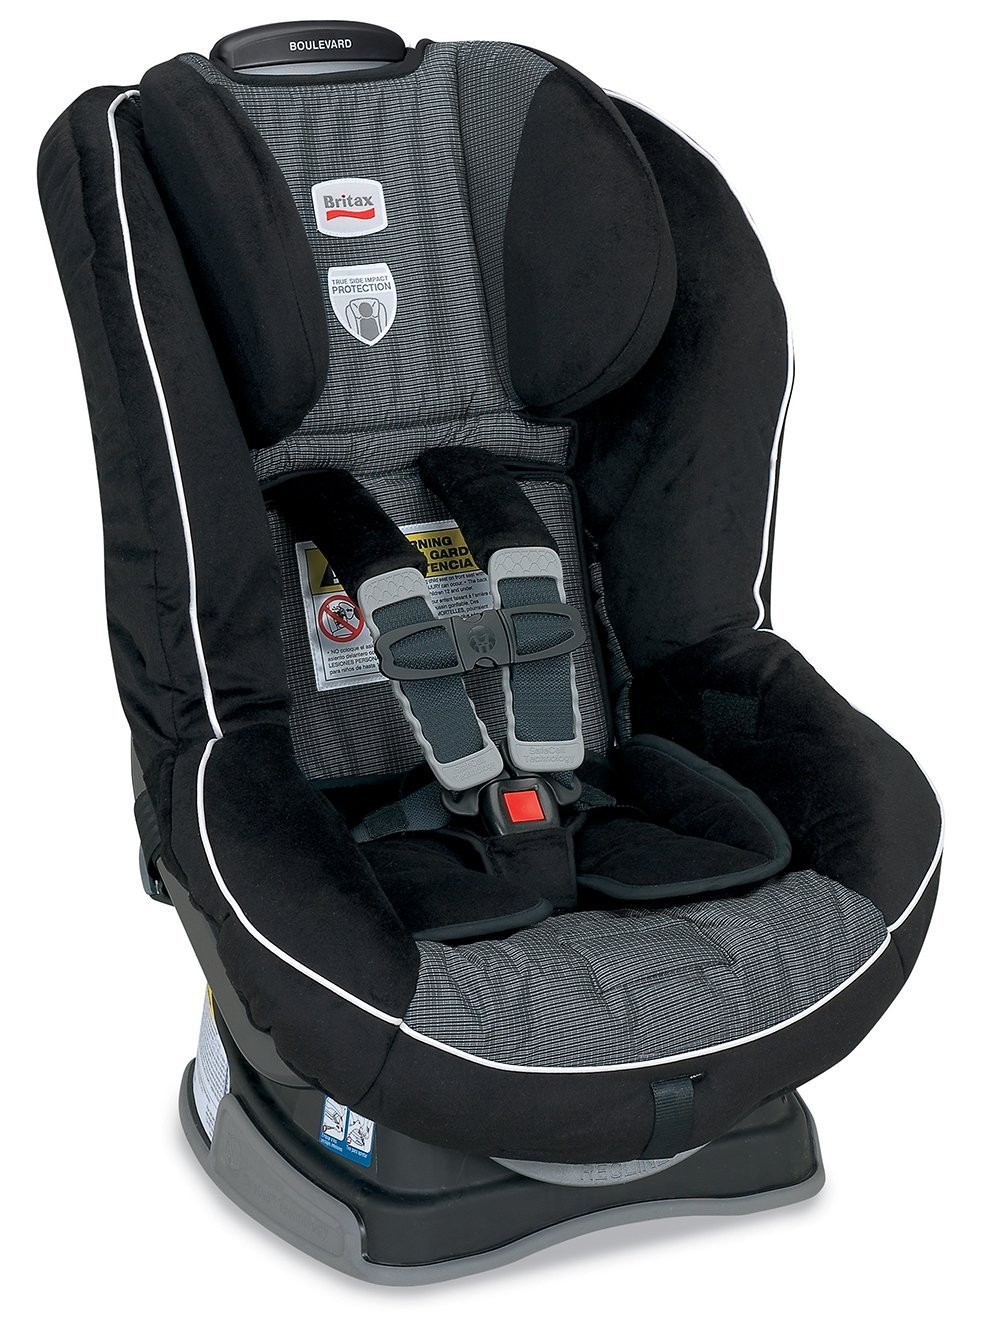 Amazon.com : Britax Boulevard G4 Convertible Car Seat, Onyx (Prior ...